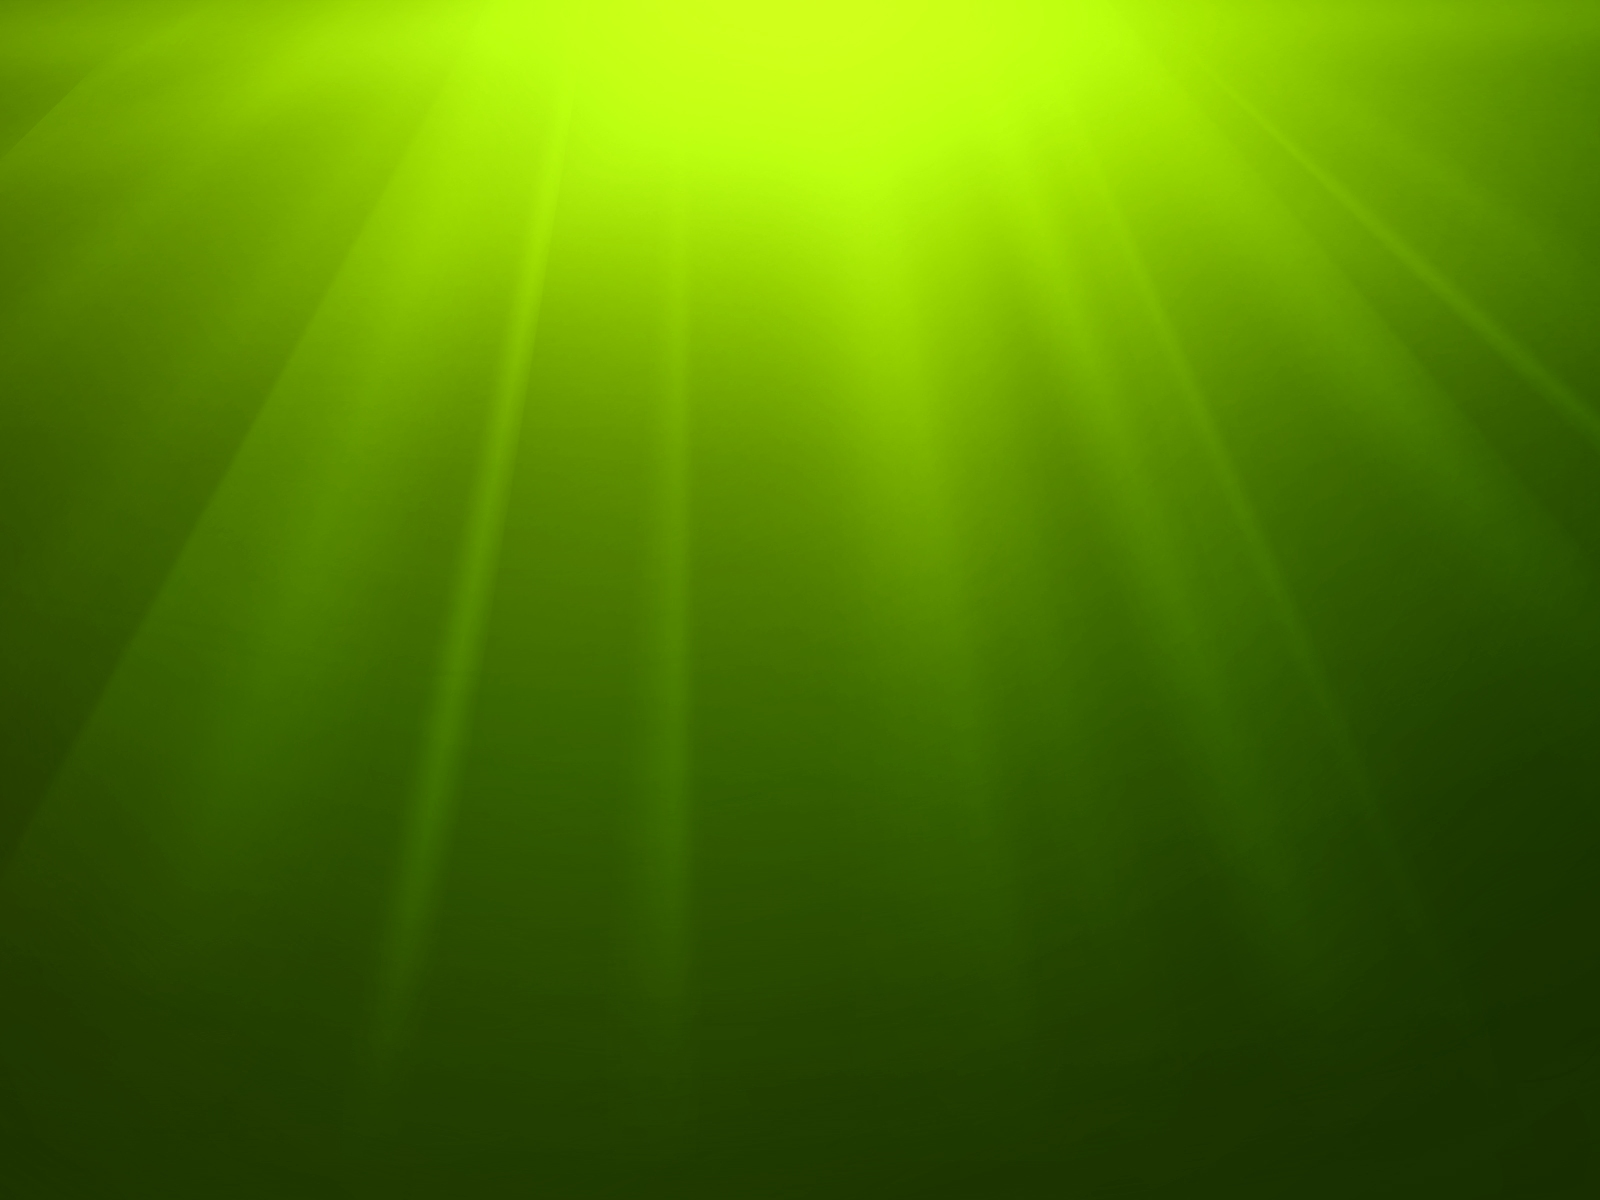 Green Wallpaper 1600x1200 Green 1600x1200